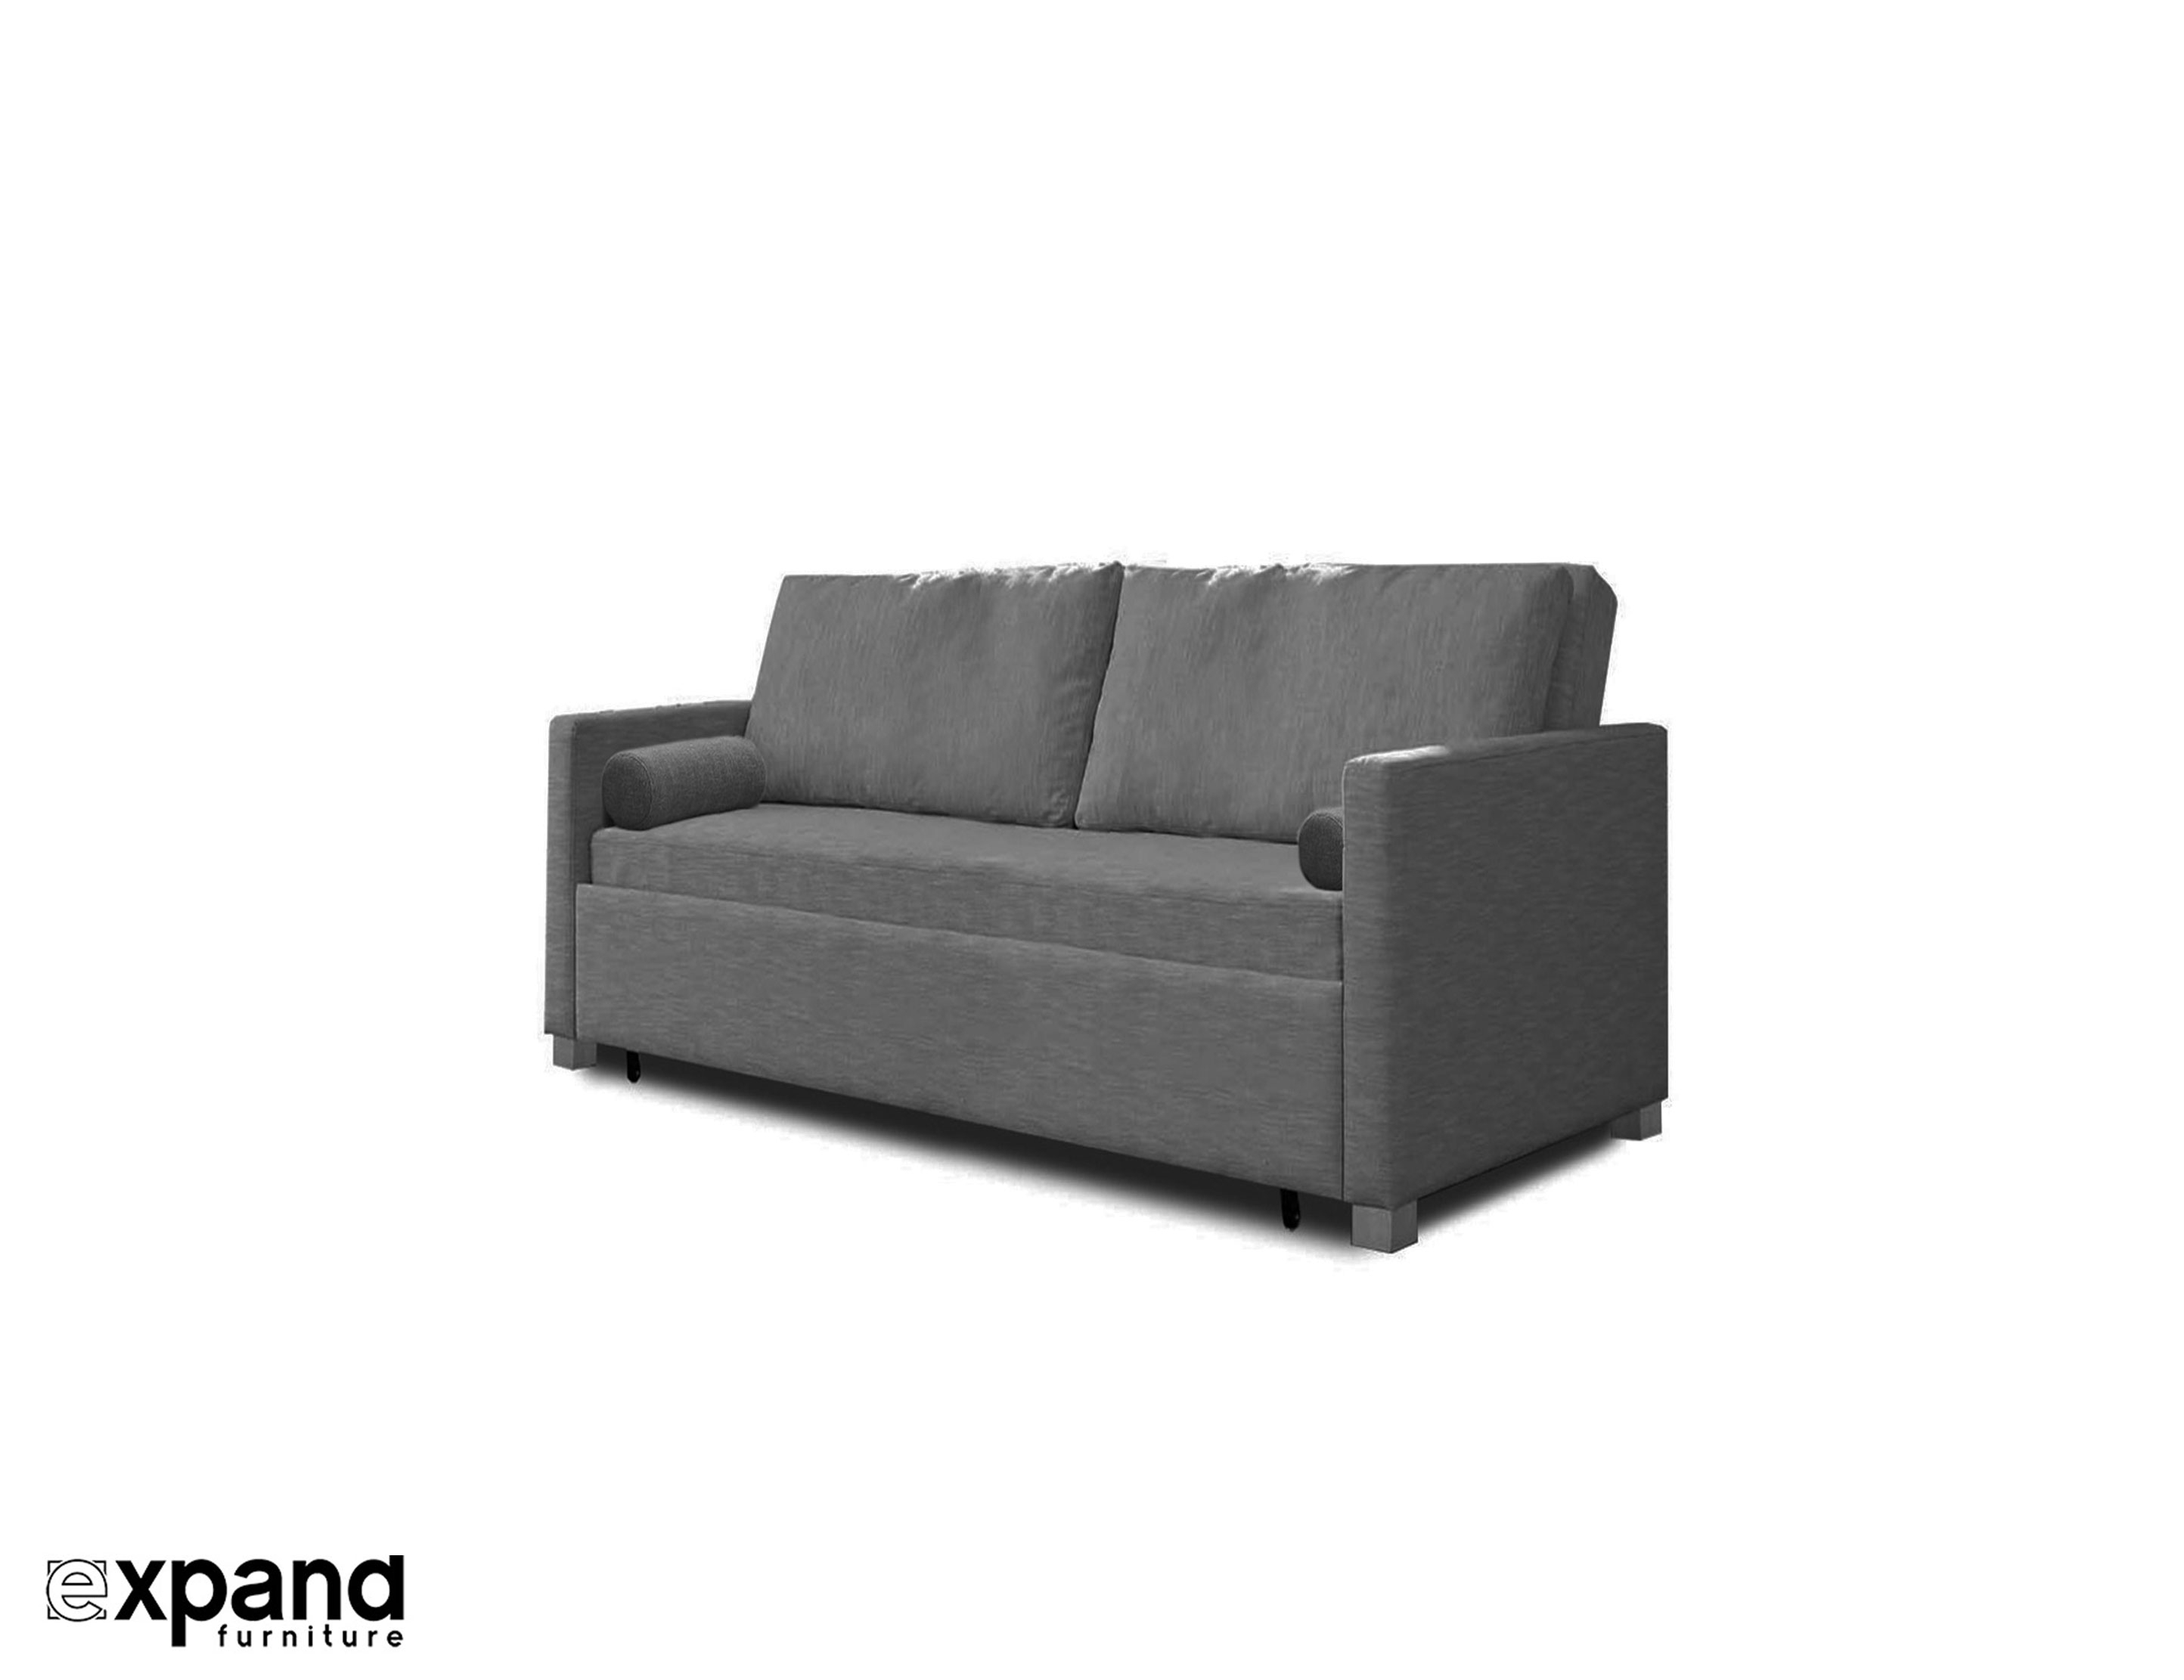 Space Saving Furniture | Convertible Wall Beds, Tables & More Pertaining To Escondido Sofa Chairs (View 15 of 25)